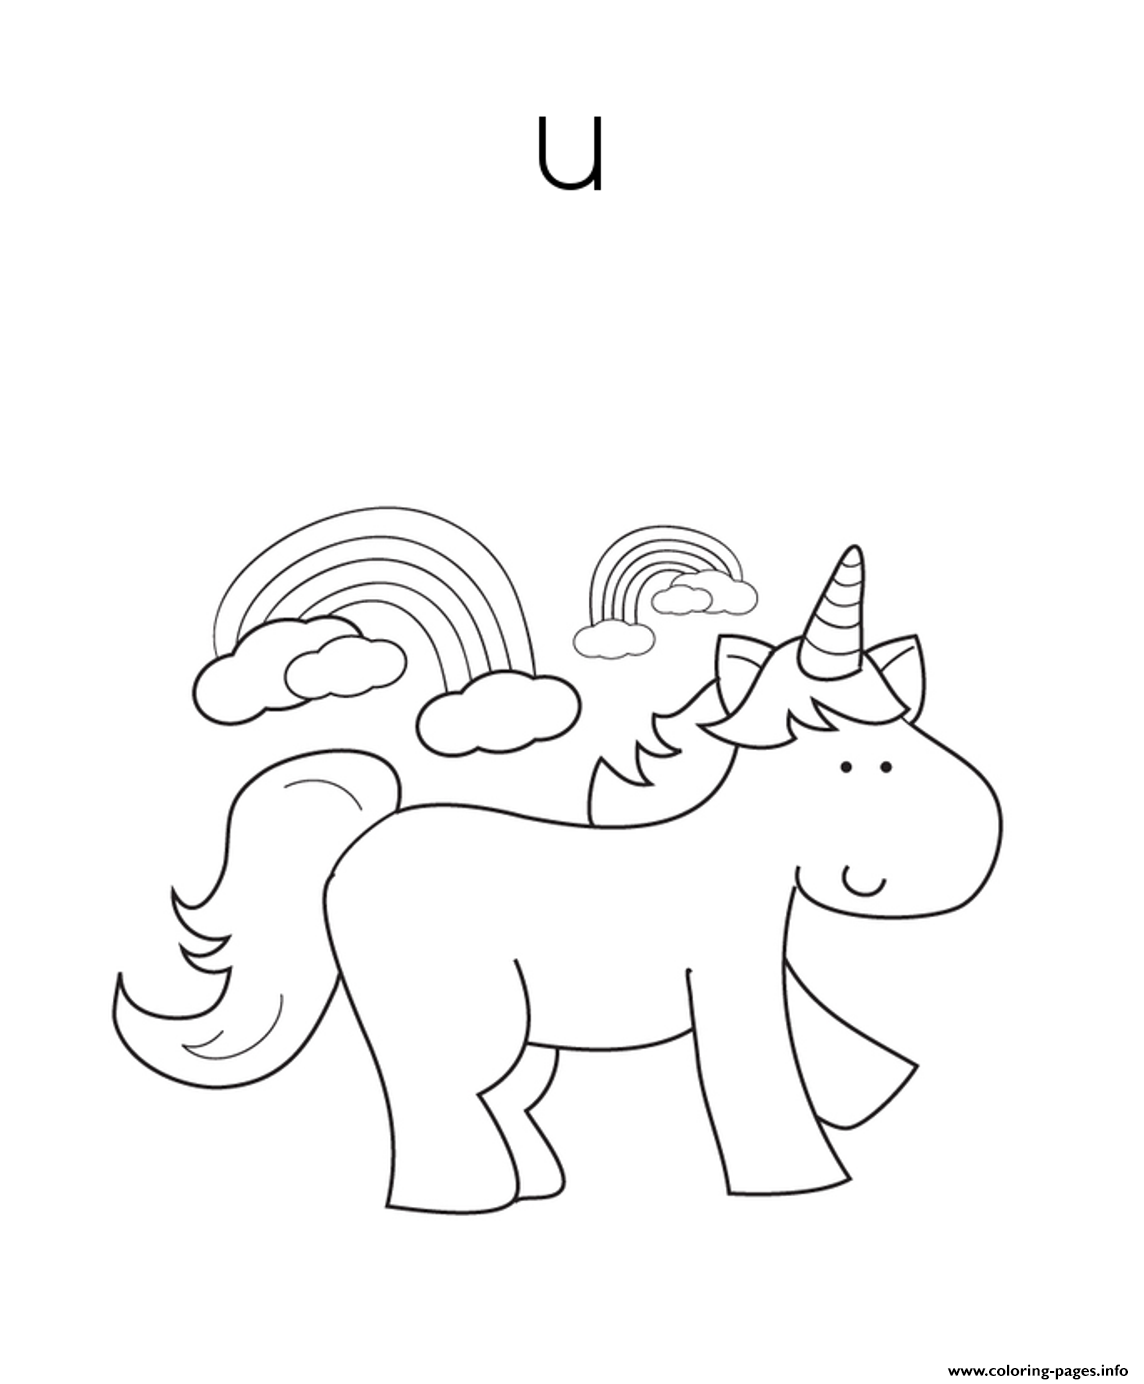 Cute Unicorn Alphabet S Free72ce coloring pages